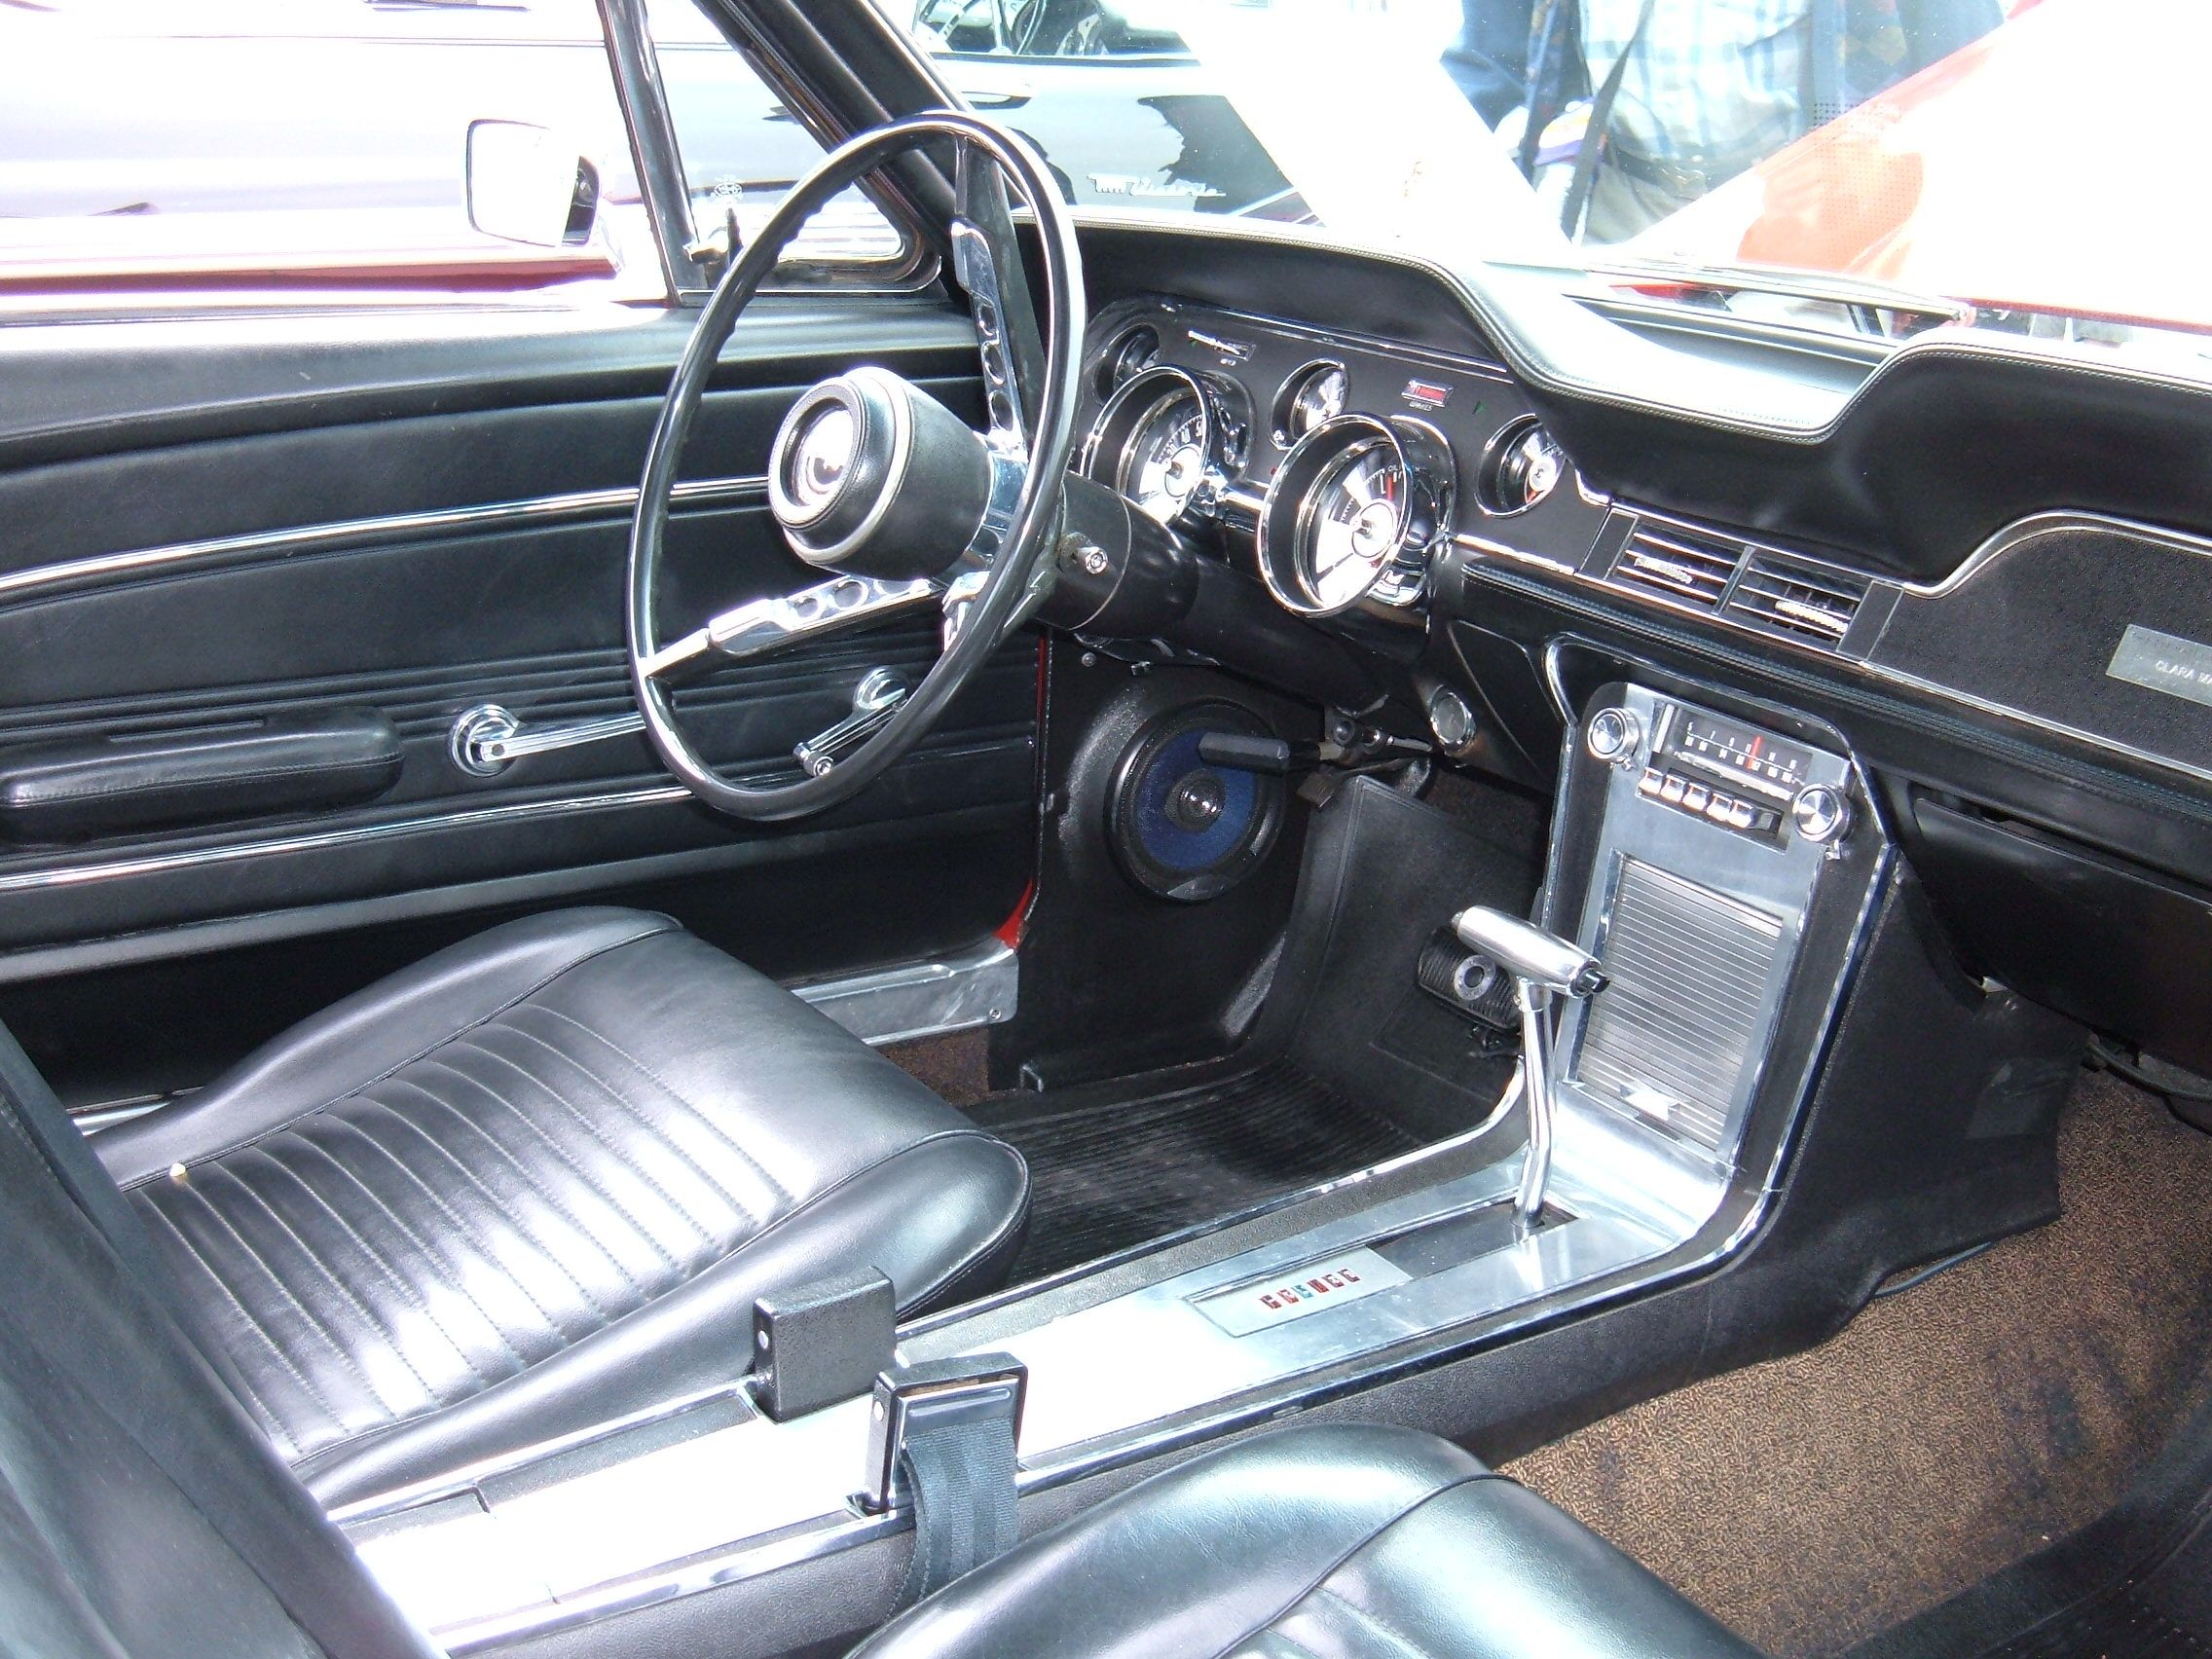 1967 Red Ford Mustang Coupe Interior Jpg 2272 1704 Mustang Parts Pinterest Ford Mustang